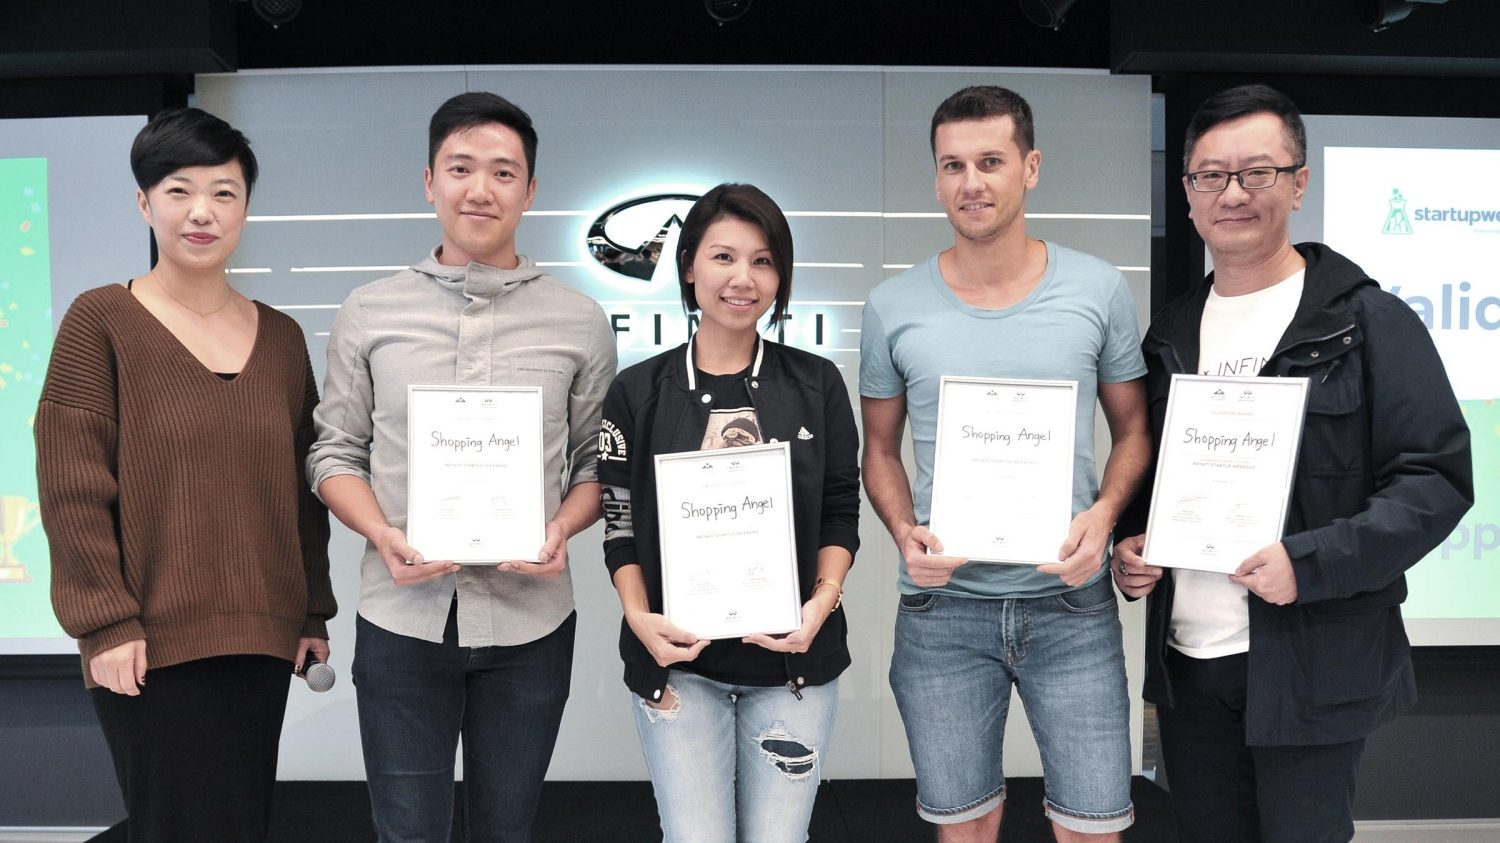 INFINITI LAB Startup Weekend | Hong Kong winner Shopping Angel